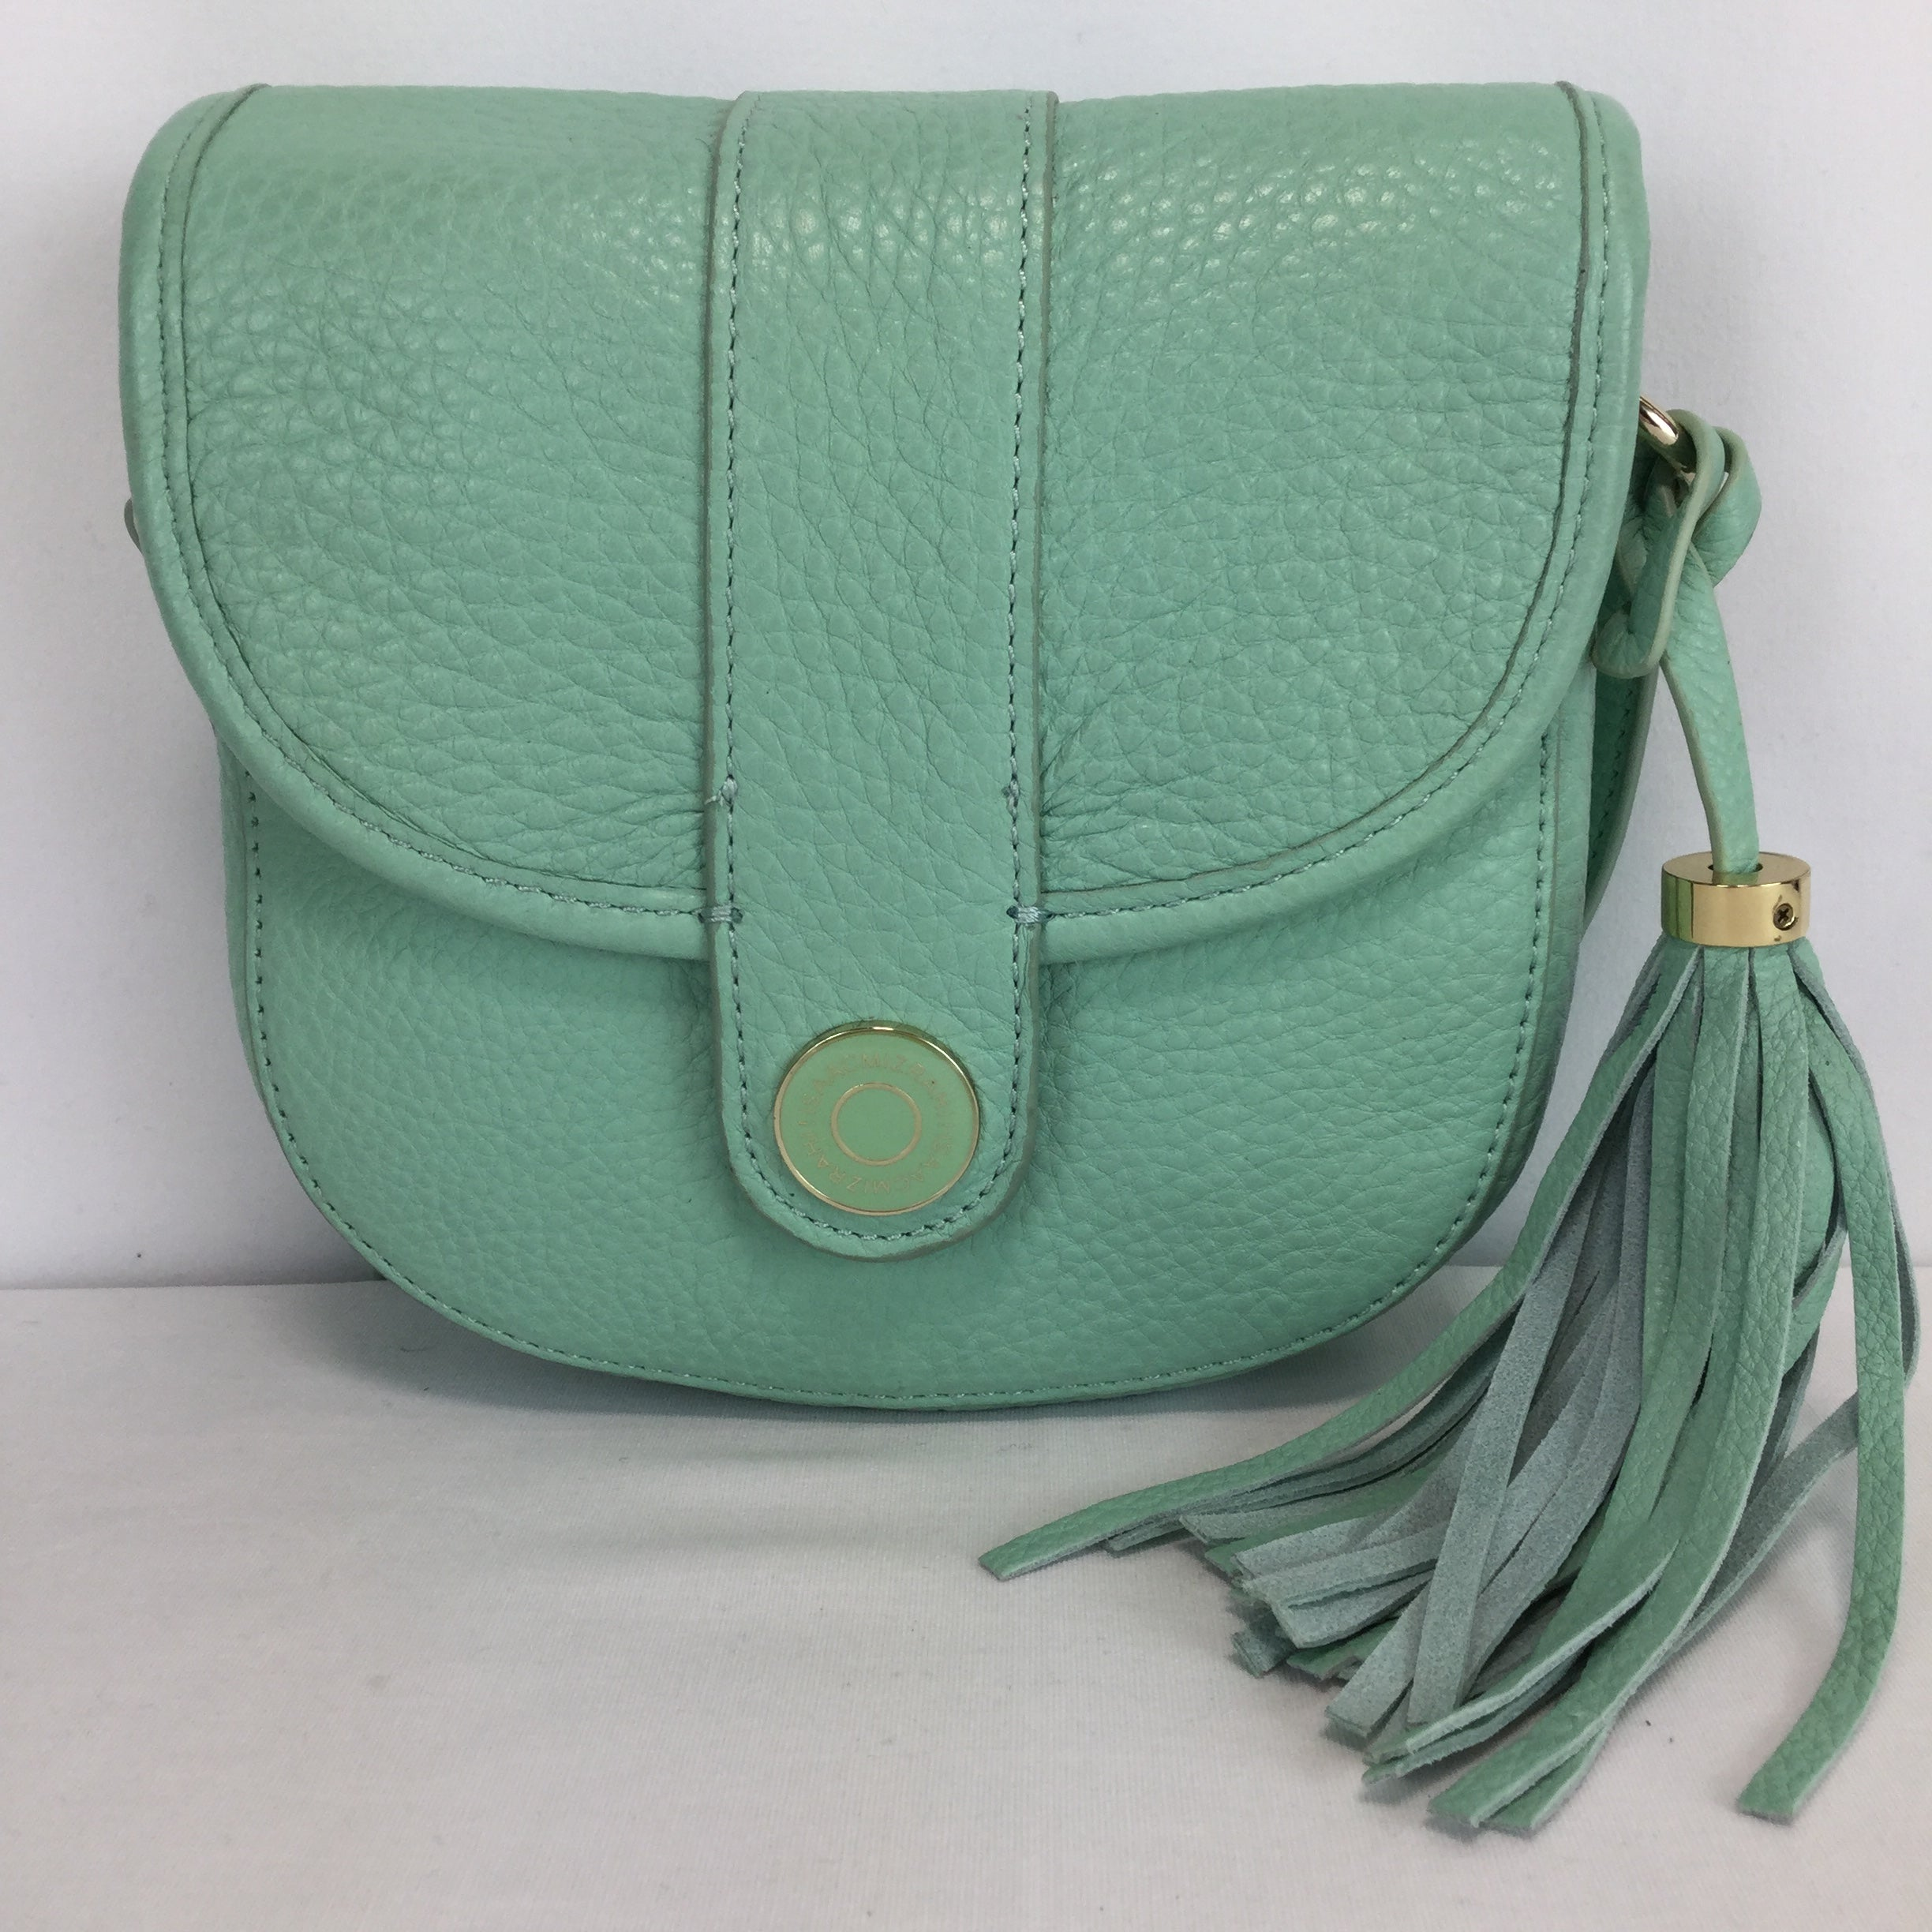 ACCESSORIES,PURSES AND HANDBAGS - BRAND NEW MINT COLORED CROSSBODY.